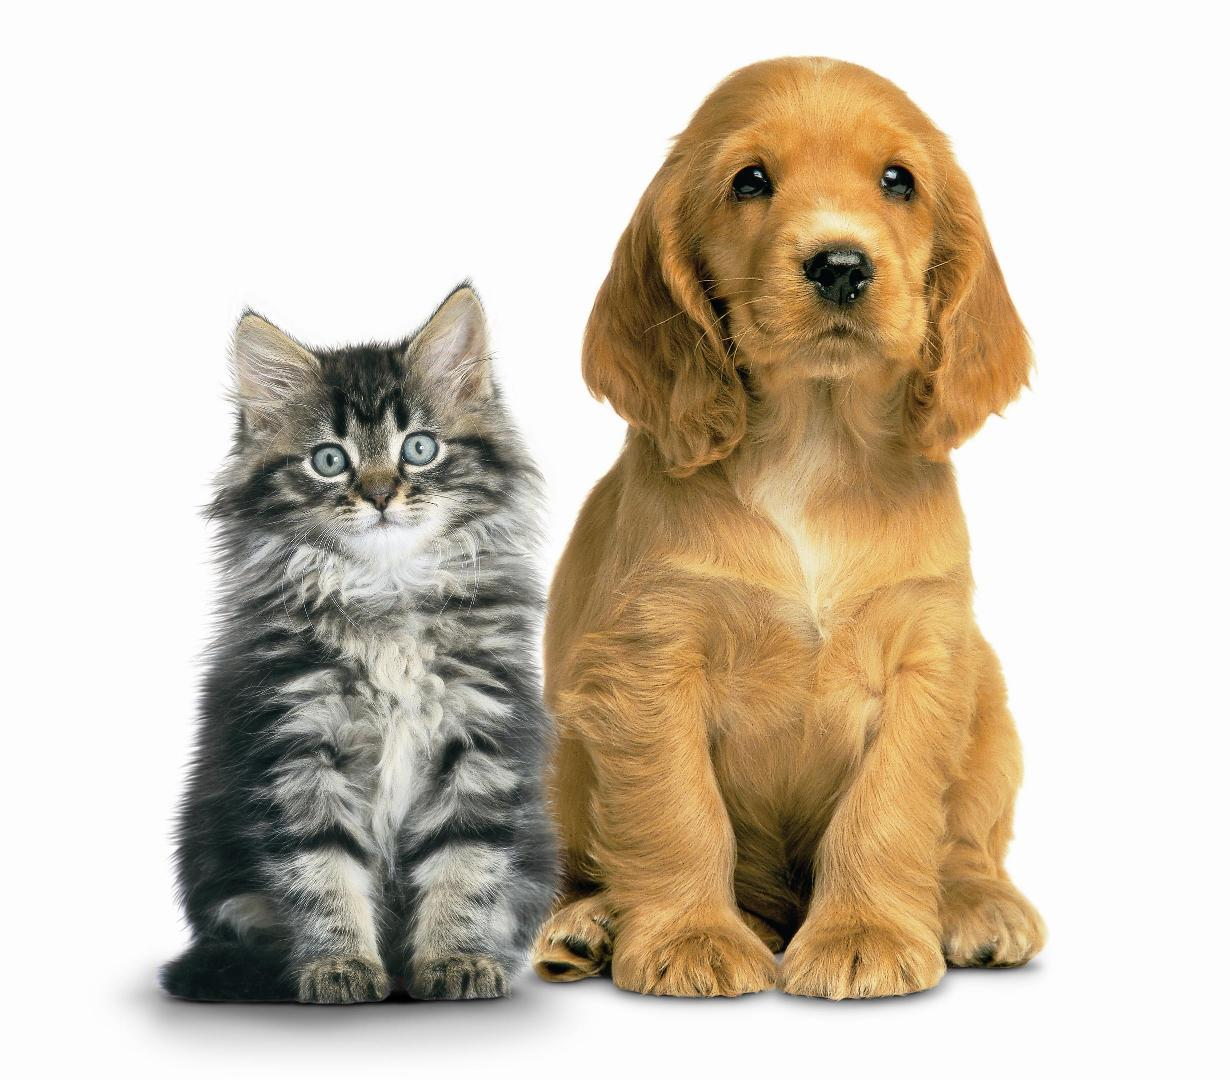 ca38d4a.png - Puppy PNG HD - Cats And Dogs PNG HD